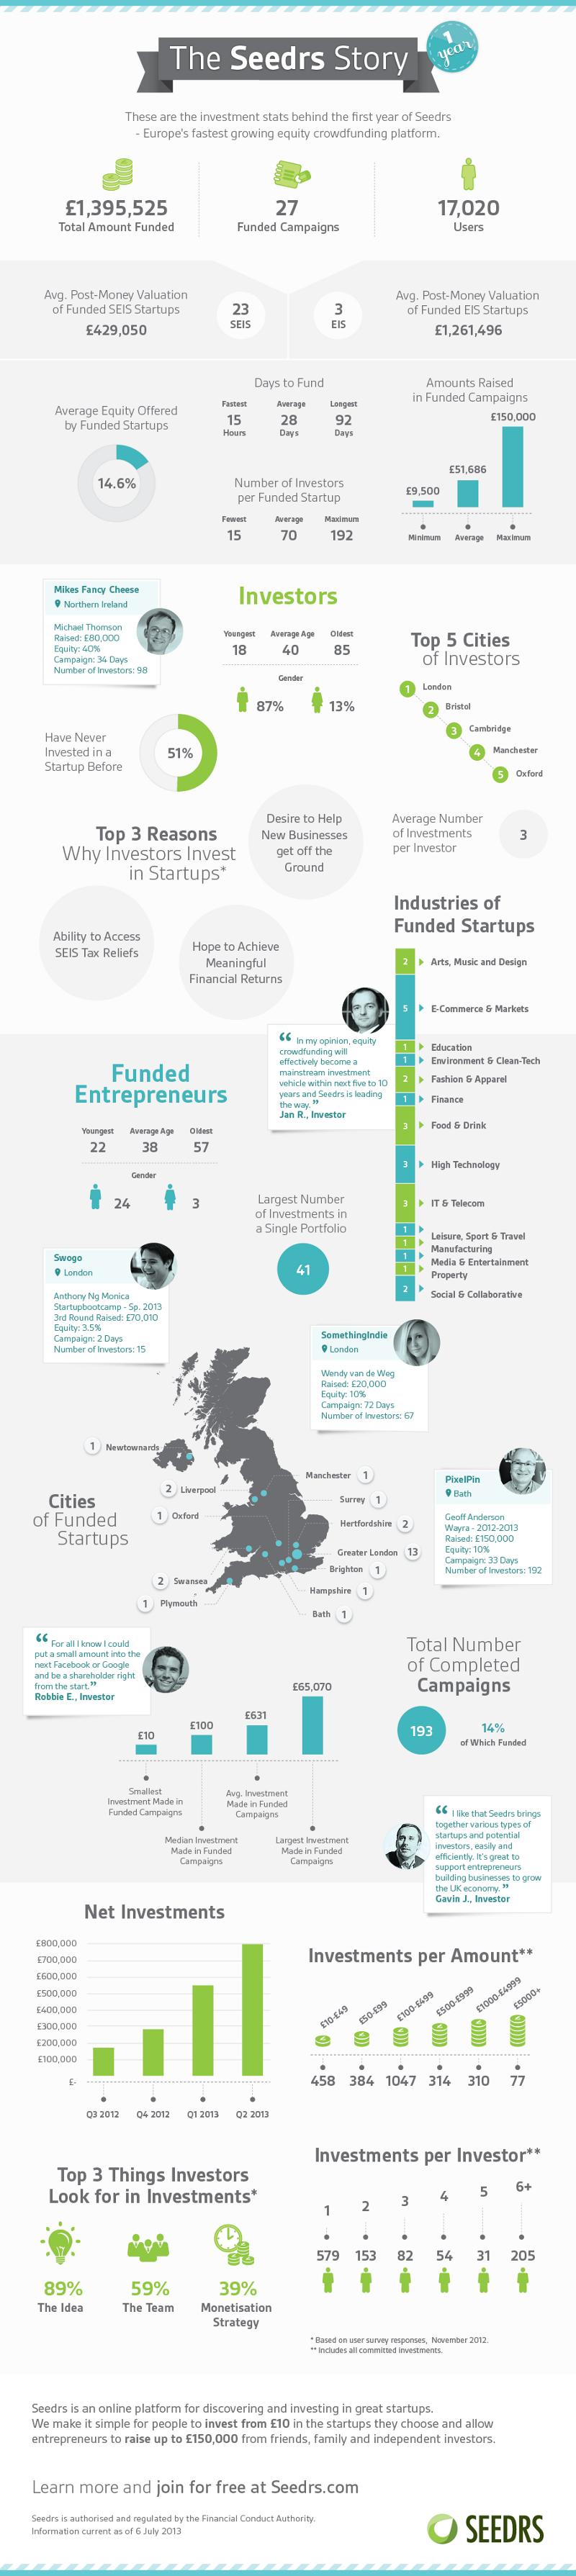 The Seedrs Story 23 United Kingdom Crowdfunding Statistics and Trends